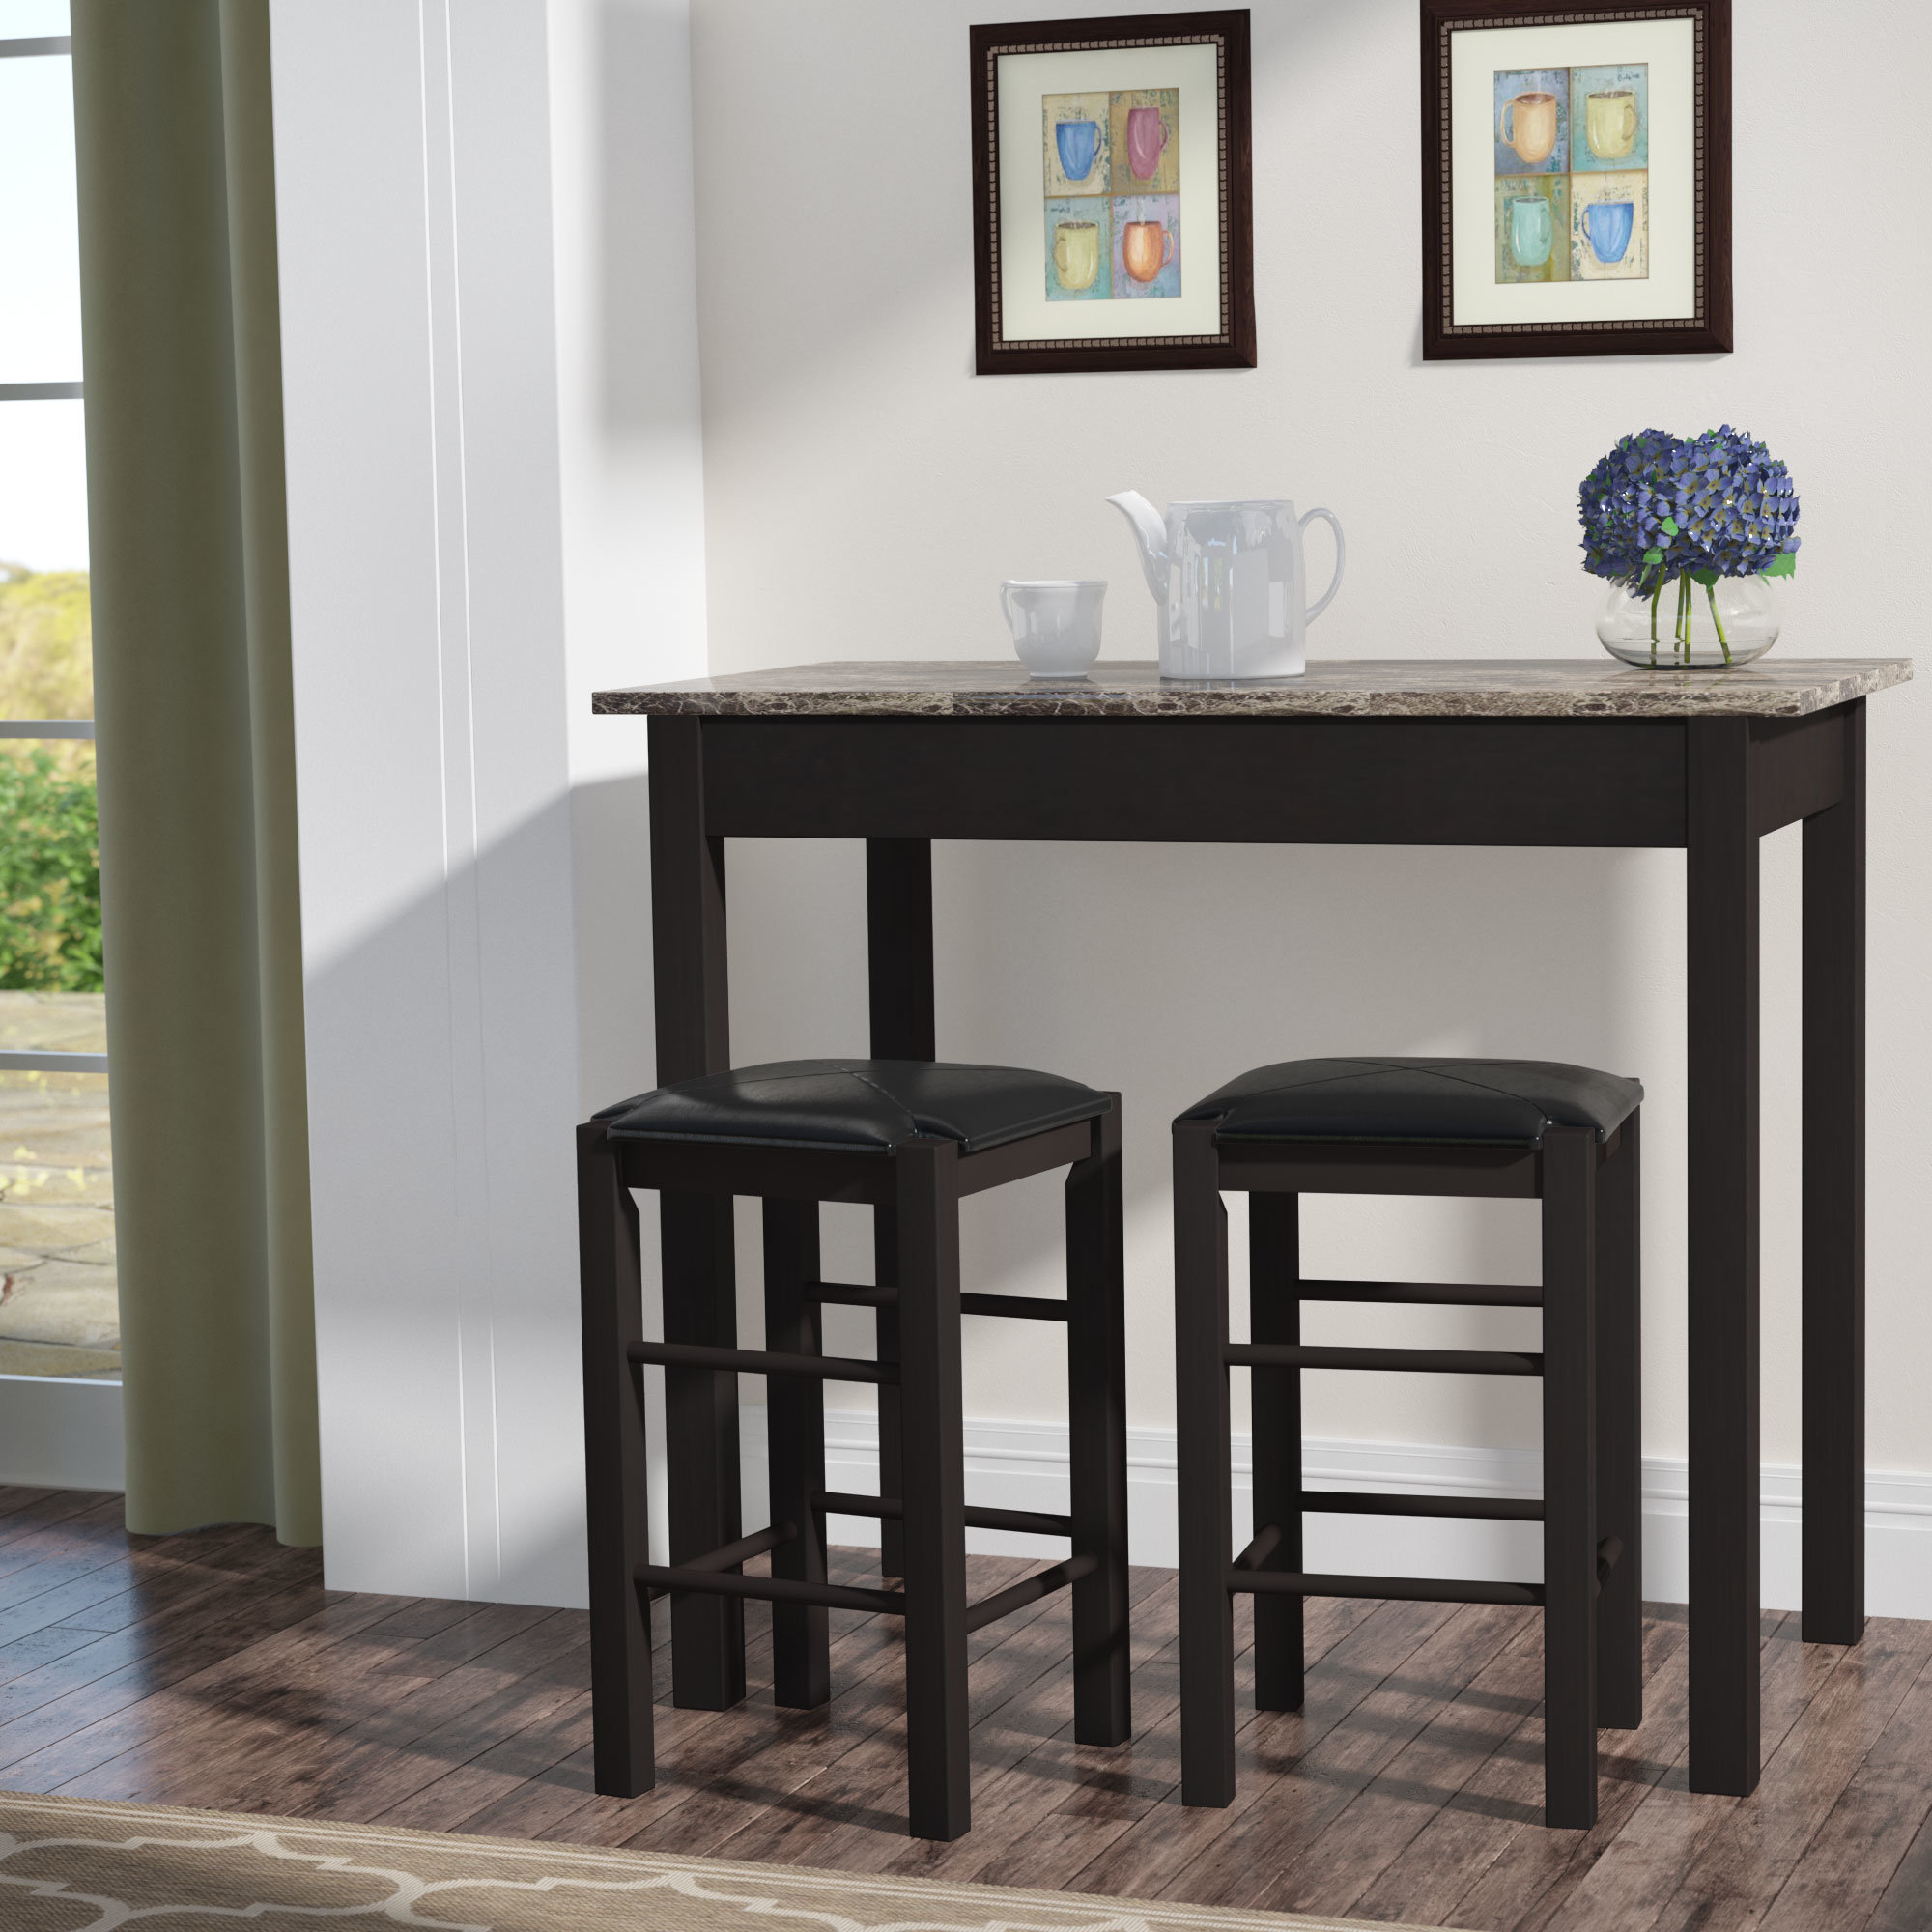 Favorite Winston Porter Sheetz 3 Piece Counter Height Dining Set & Reviews Throughout Mitzel 3 Piece Dining Sets (View 5 of 25)